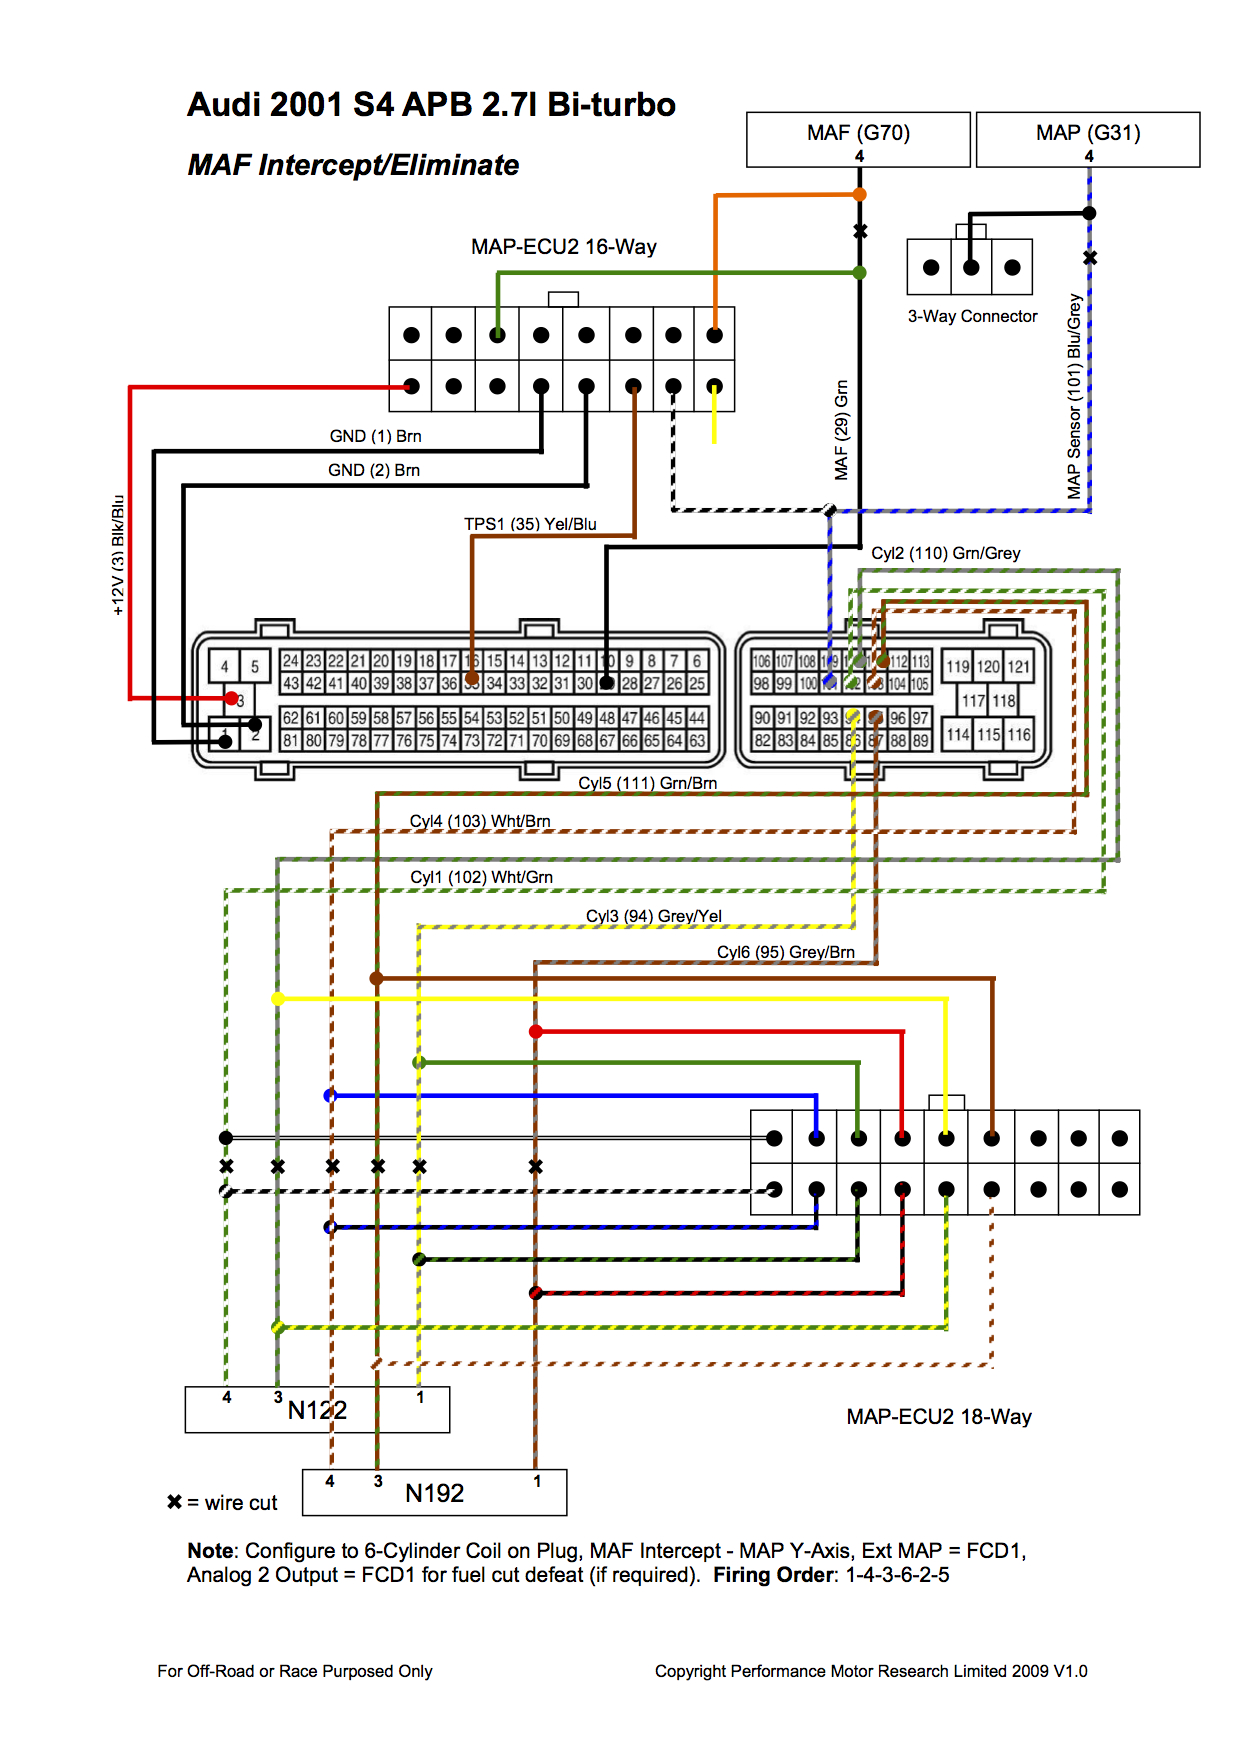 Audi S4 20011 ecu wiring diagram mini cooper ecu wiring diagram \u2022 wiring 2002 toyota camry stereo wiring diagram at suagrazia.org